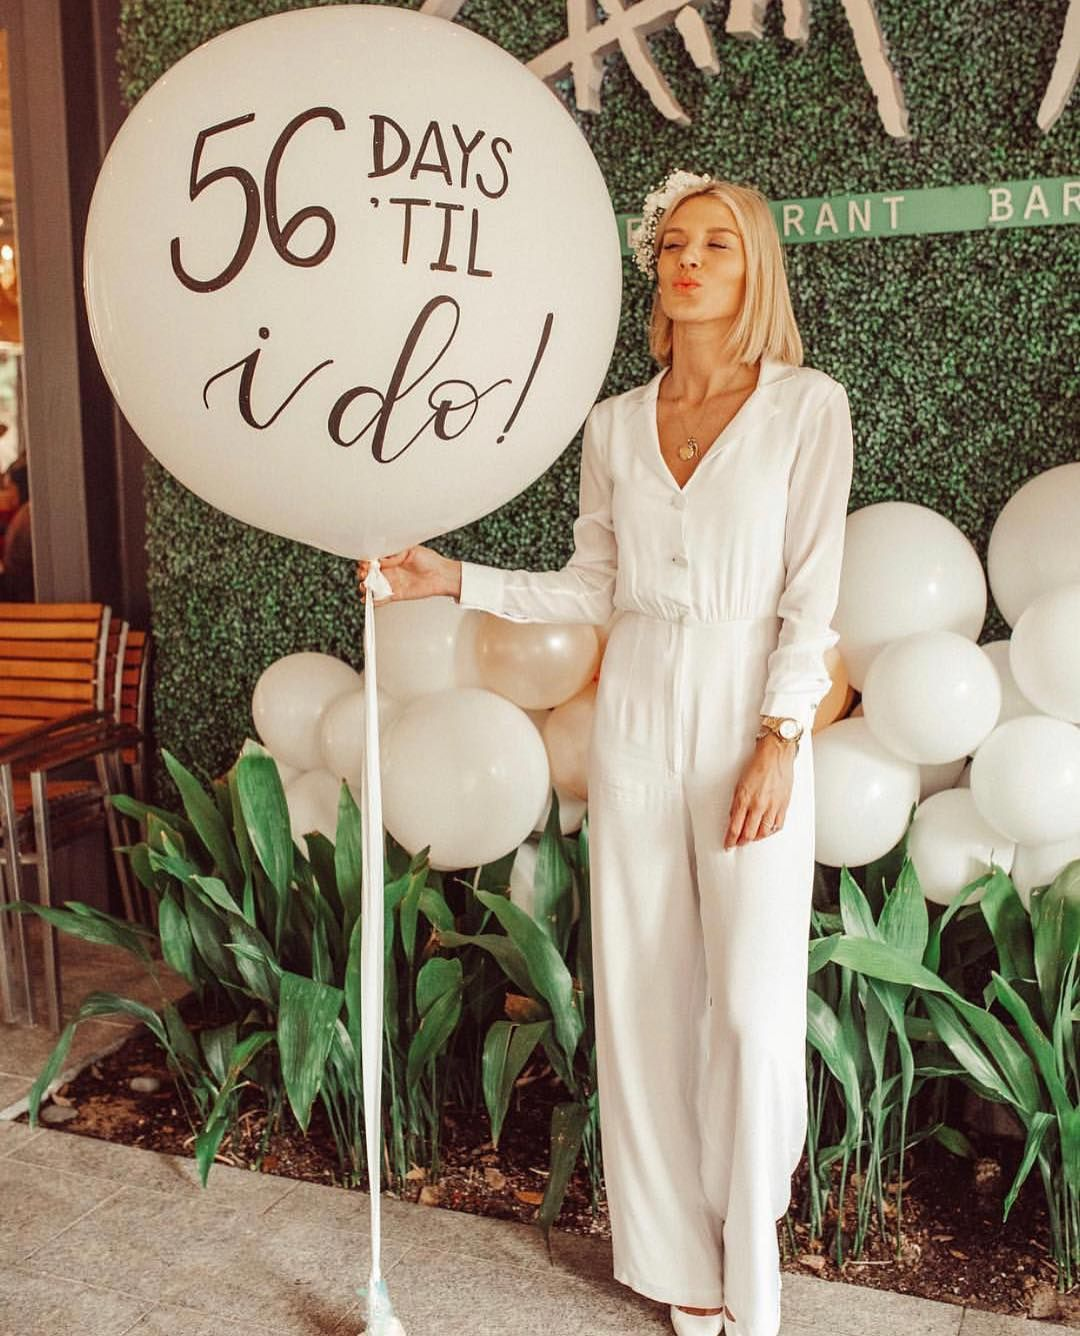 "PARTY WITH LUSHRA on Instagram: ""56 days 'til 'I do' � & how gorgeous is this bride-to-be?! �� #partywithlushra • • • • Custom calligraphy balloon: $45 """